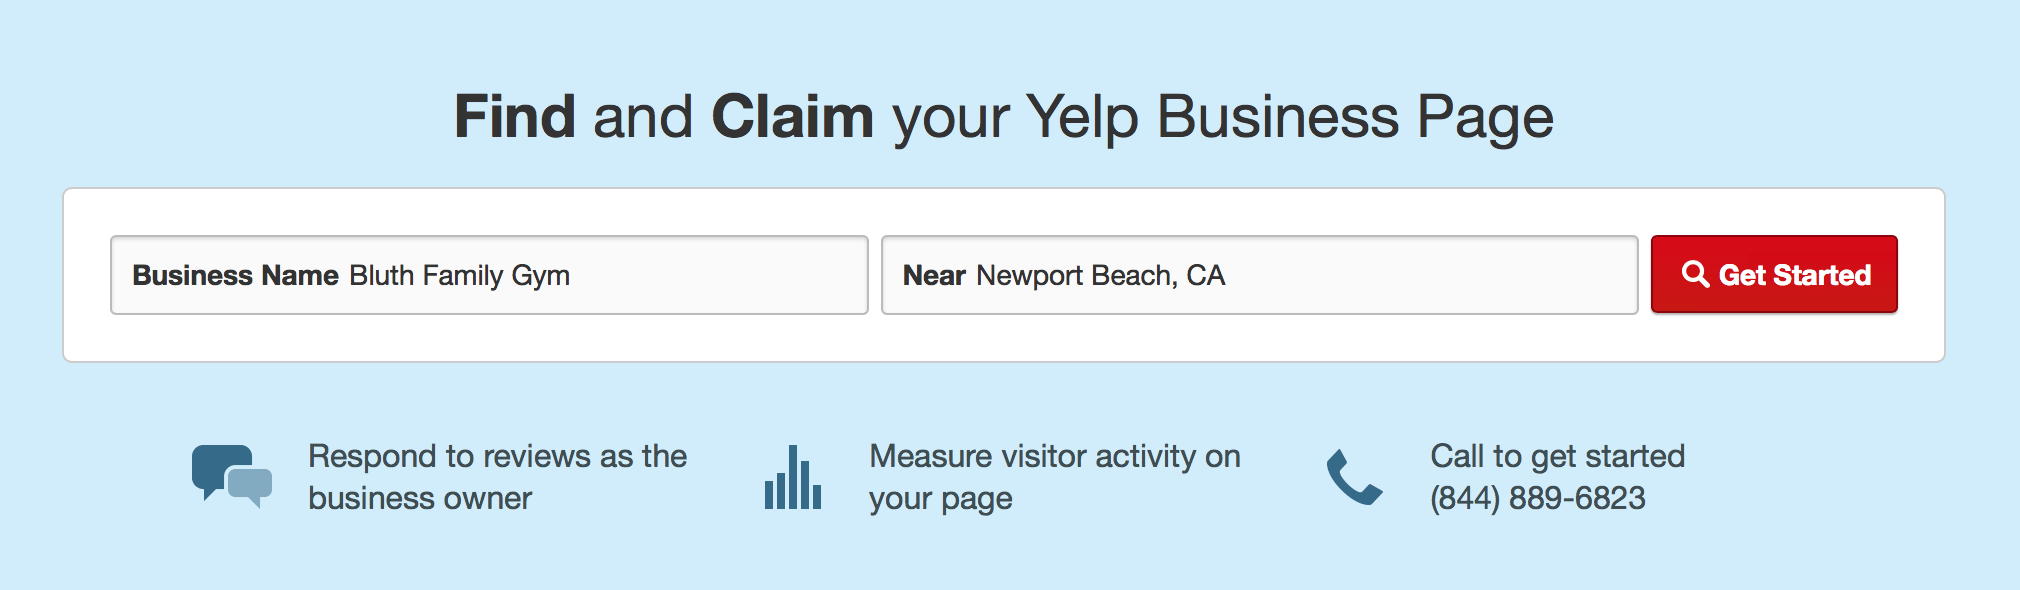 yelp_biz_search.png